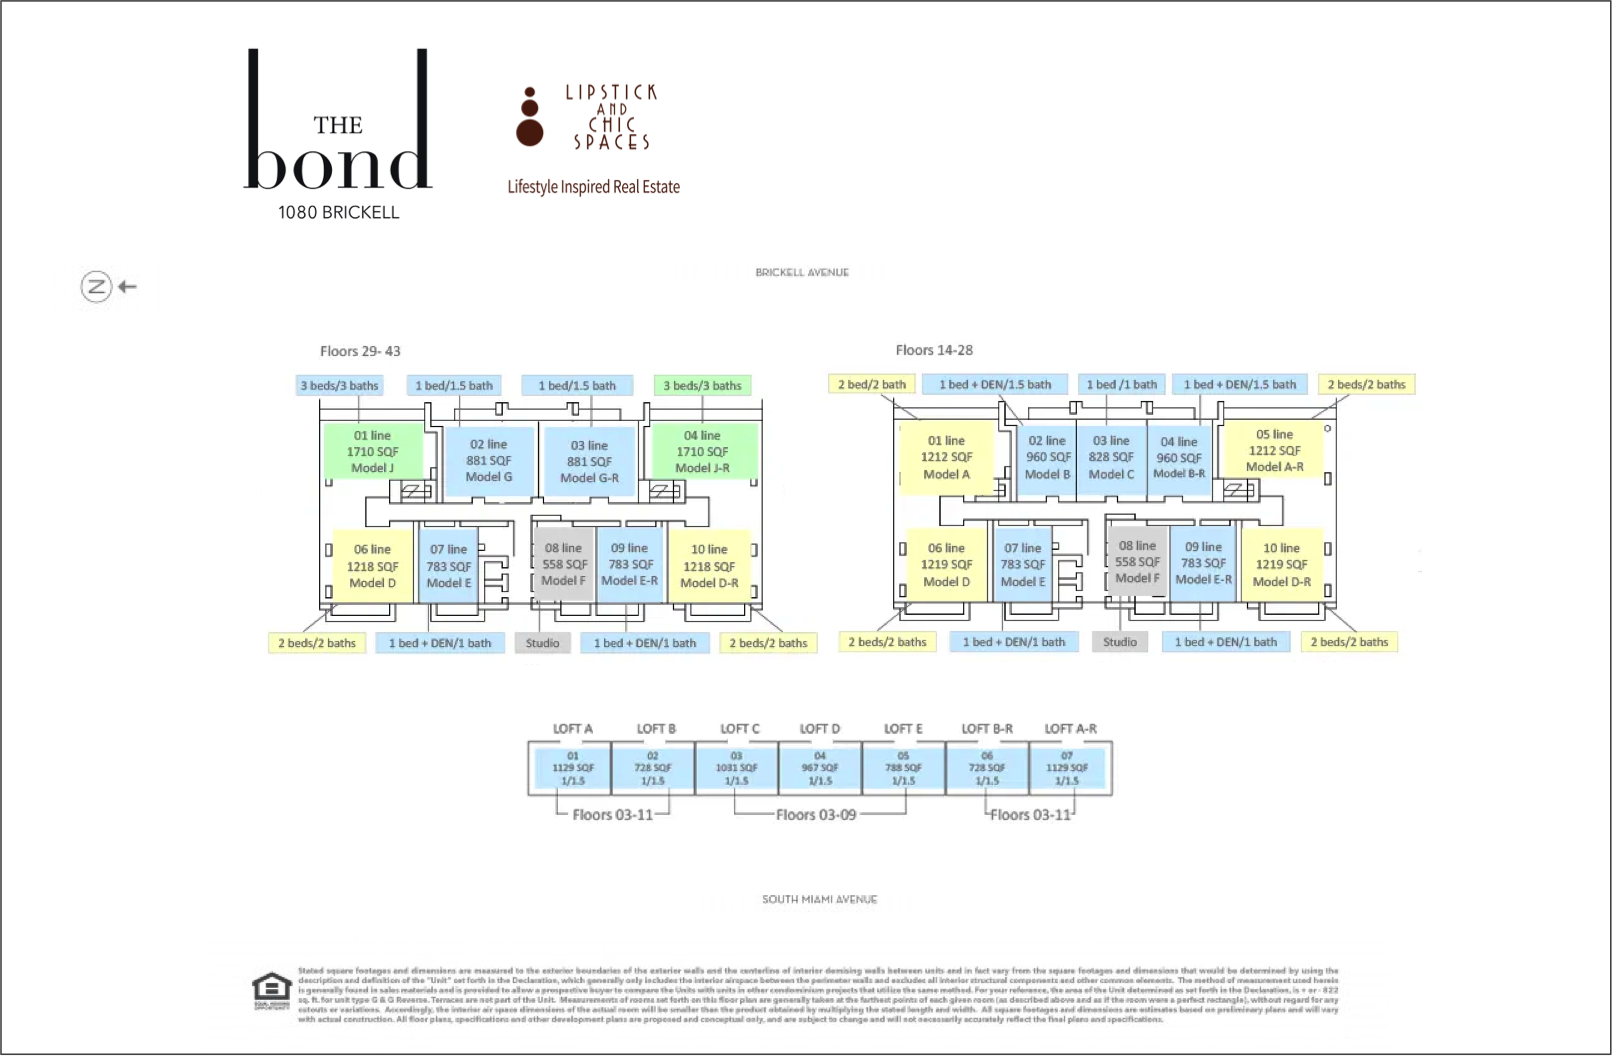 key-plan-the-bond-on-brickell_lipstickandchicspaces.com.png